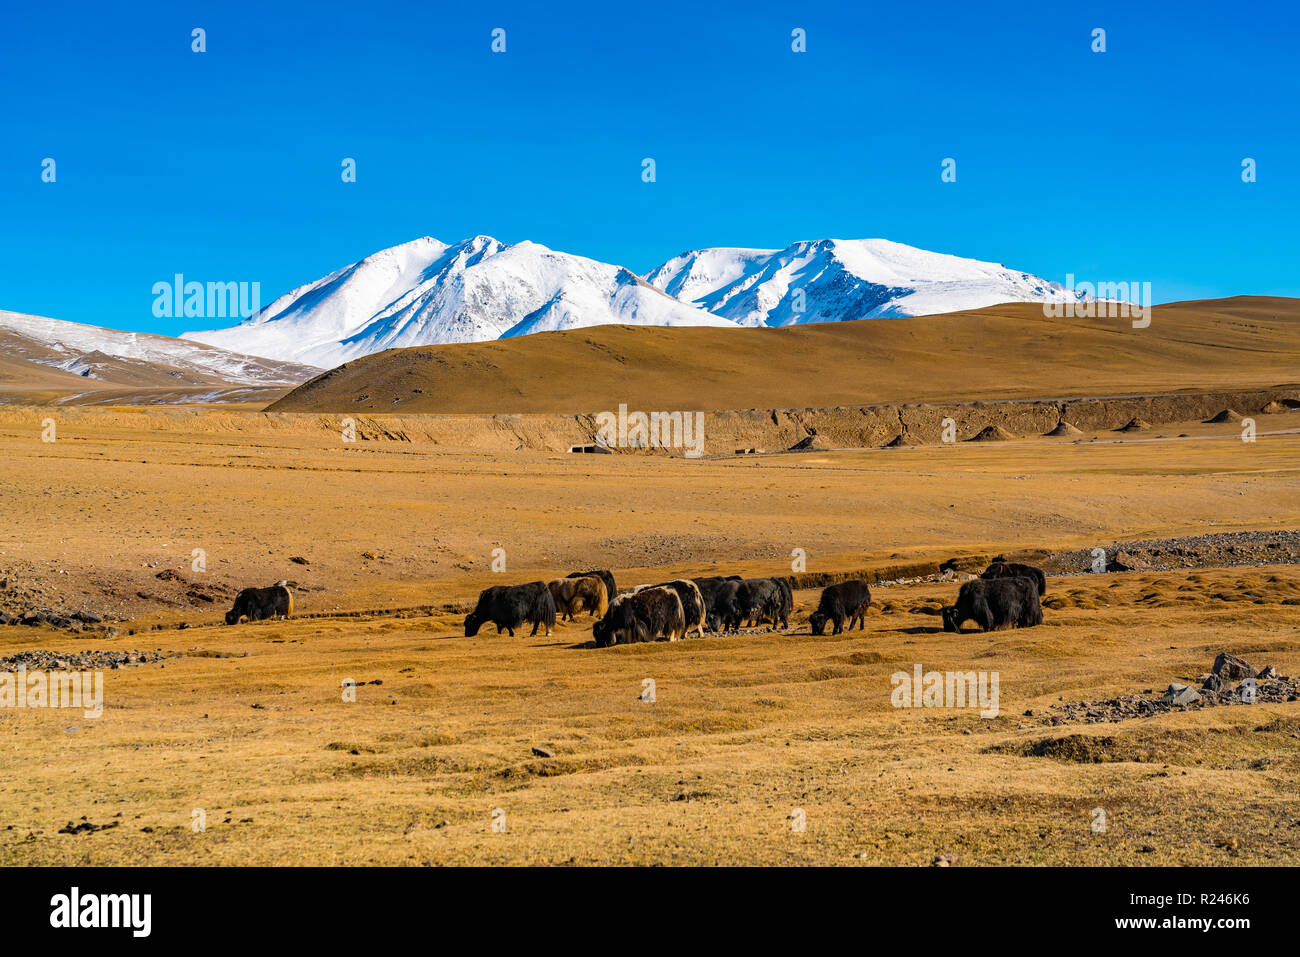 Summer view of the steppe with a herd of cows and the beautiful snow capped mountain in Mongolia Stock Photo